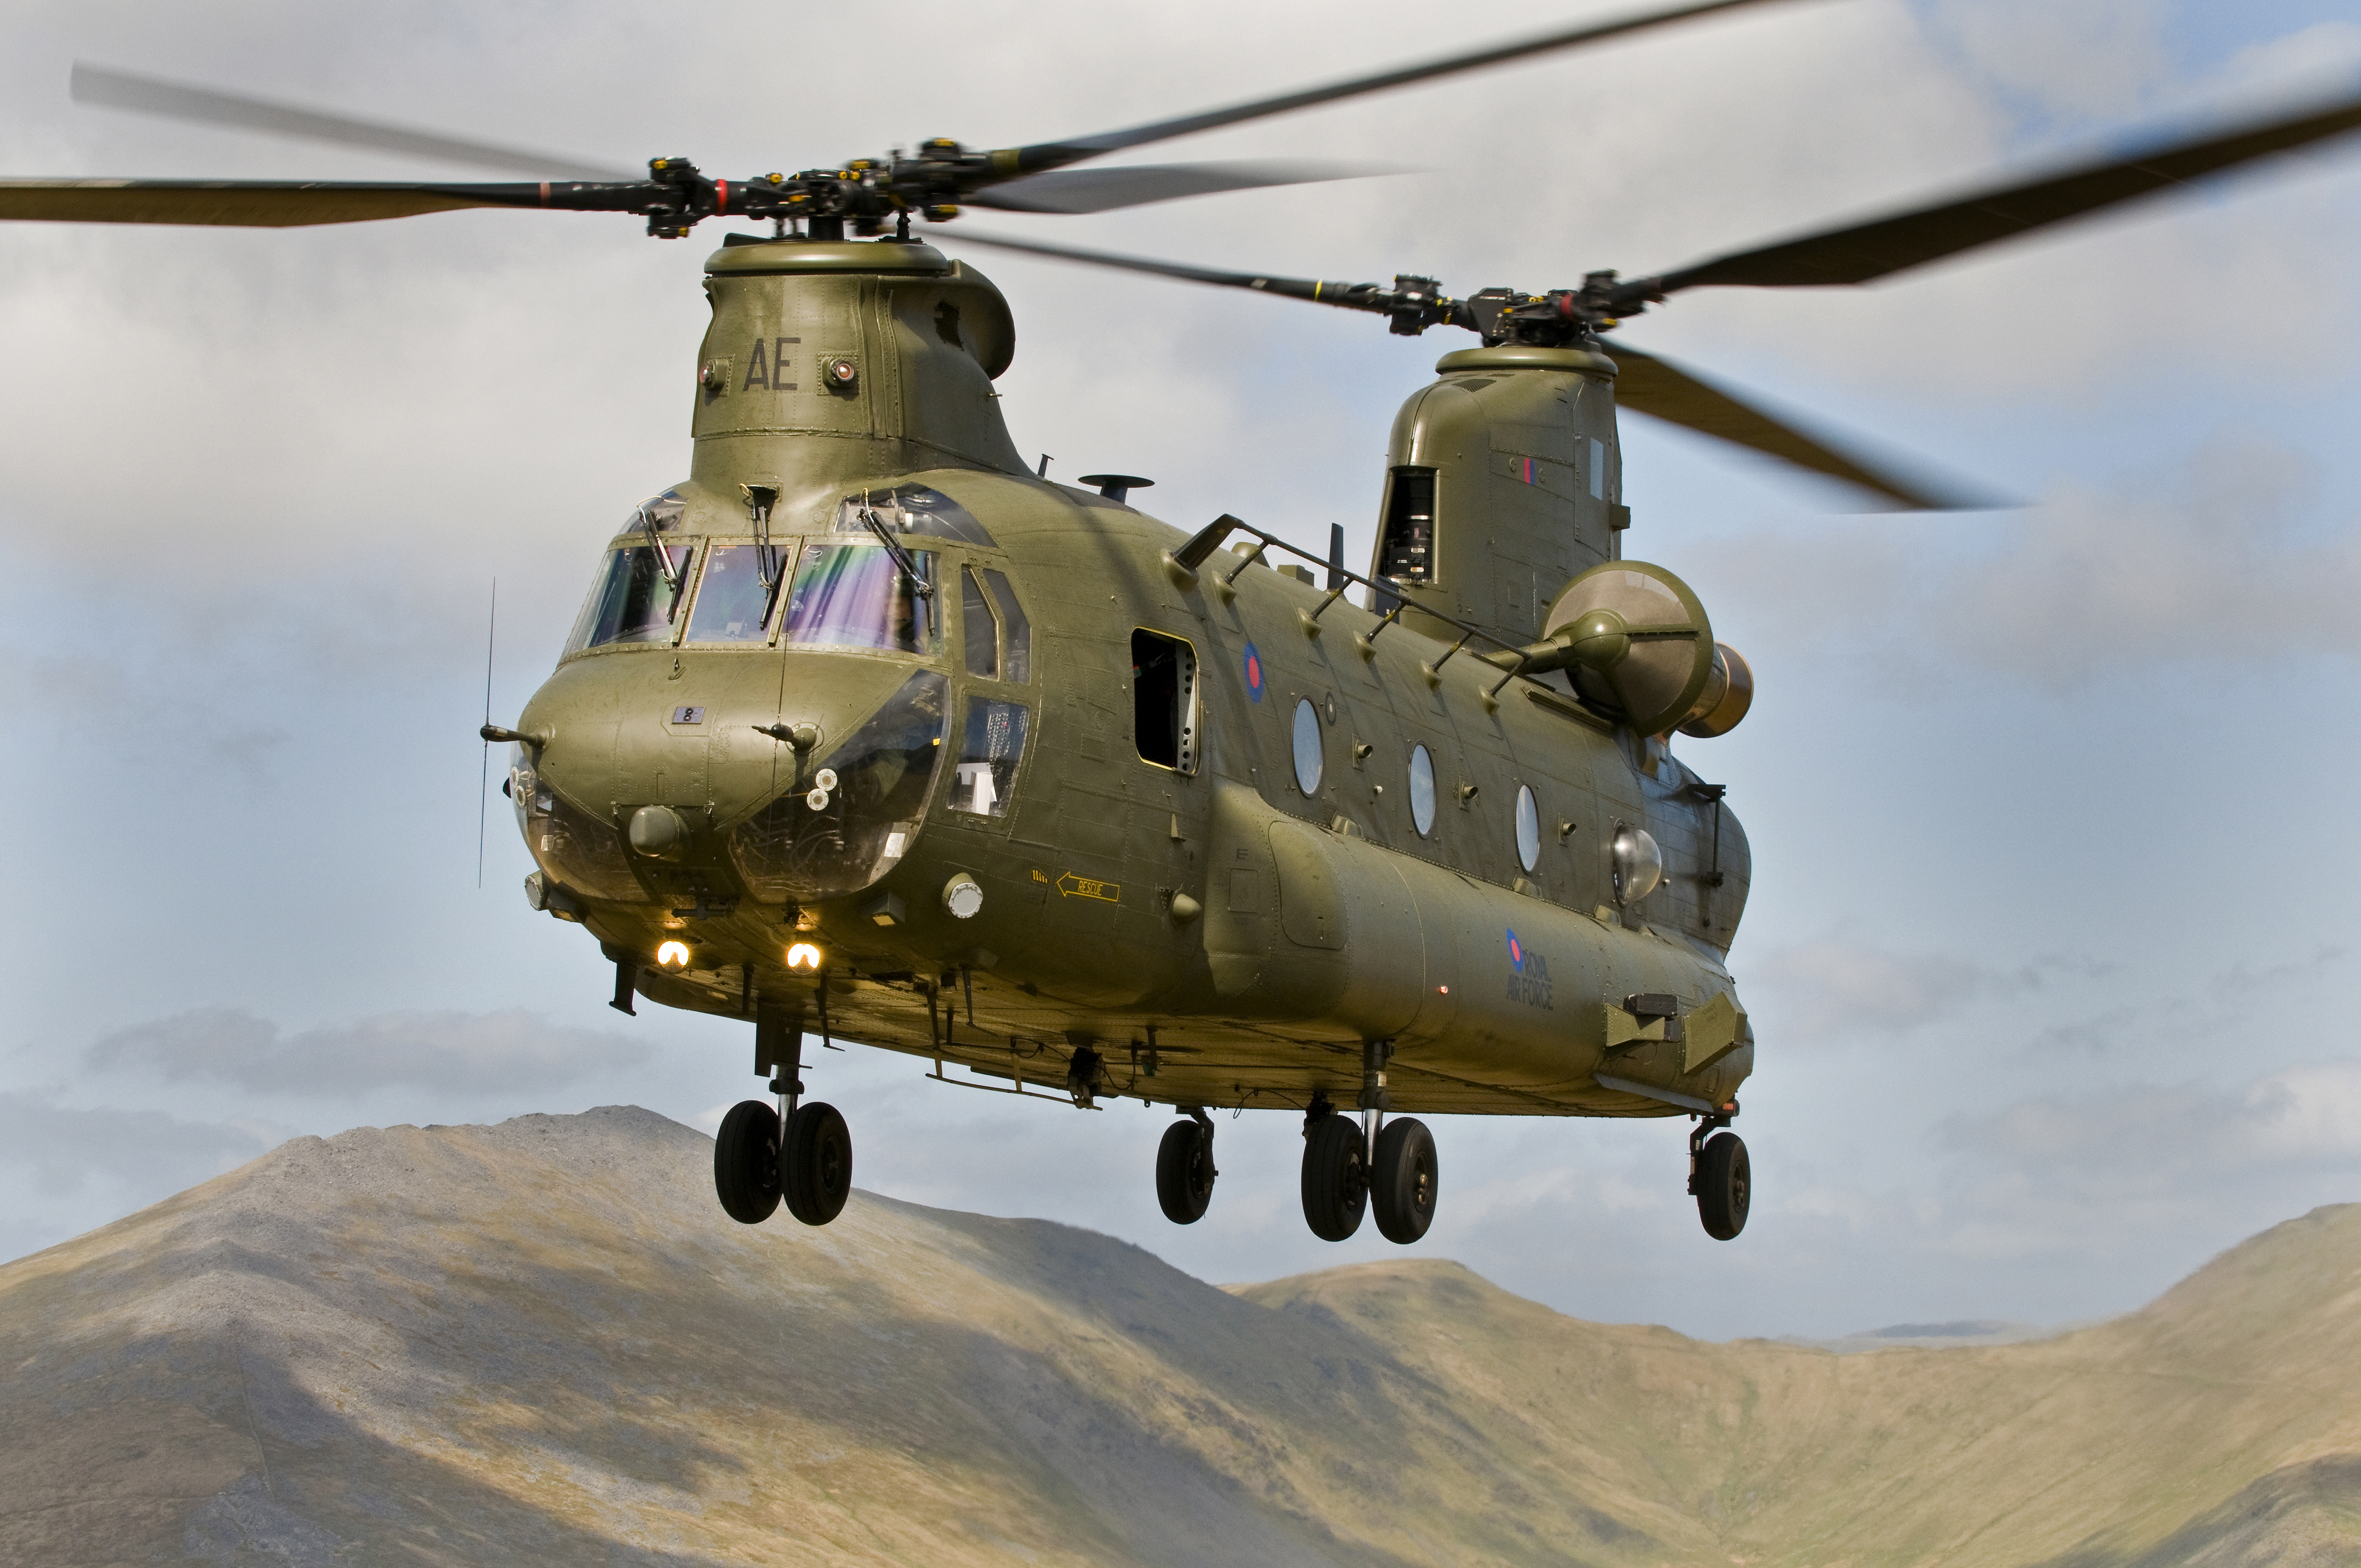 ch 47 chinook helicopter with File Raf Chinook Helicopter Over Wales Mod 45151080 on Ch 47 Chinook likewise 3558873128 furthermore Ch 47 308 additionally Avch47 2 also V2500 Engine.